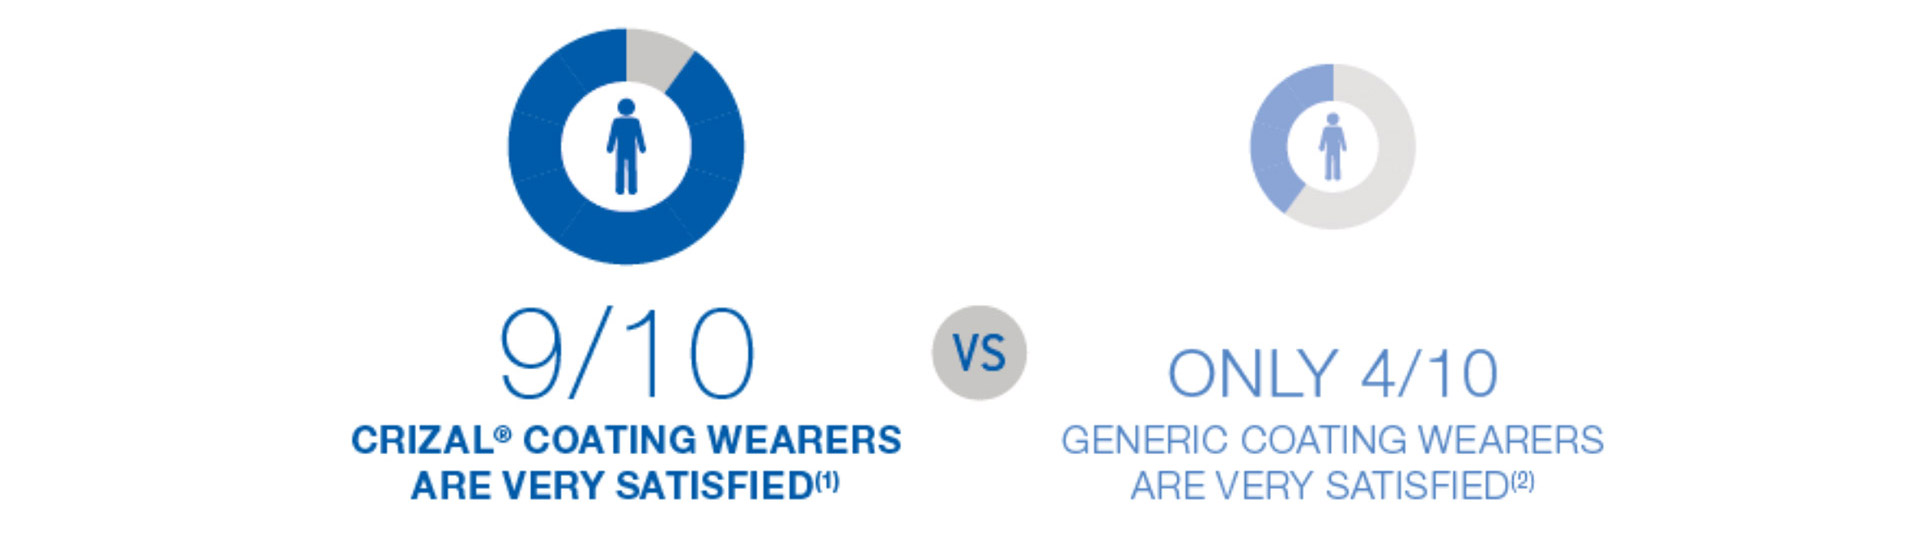 9/10 Crizal® coating wearers are very satisfied[1] vs only 4/10 generic coating wearers are very satisfied[2].